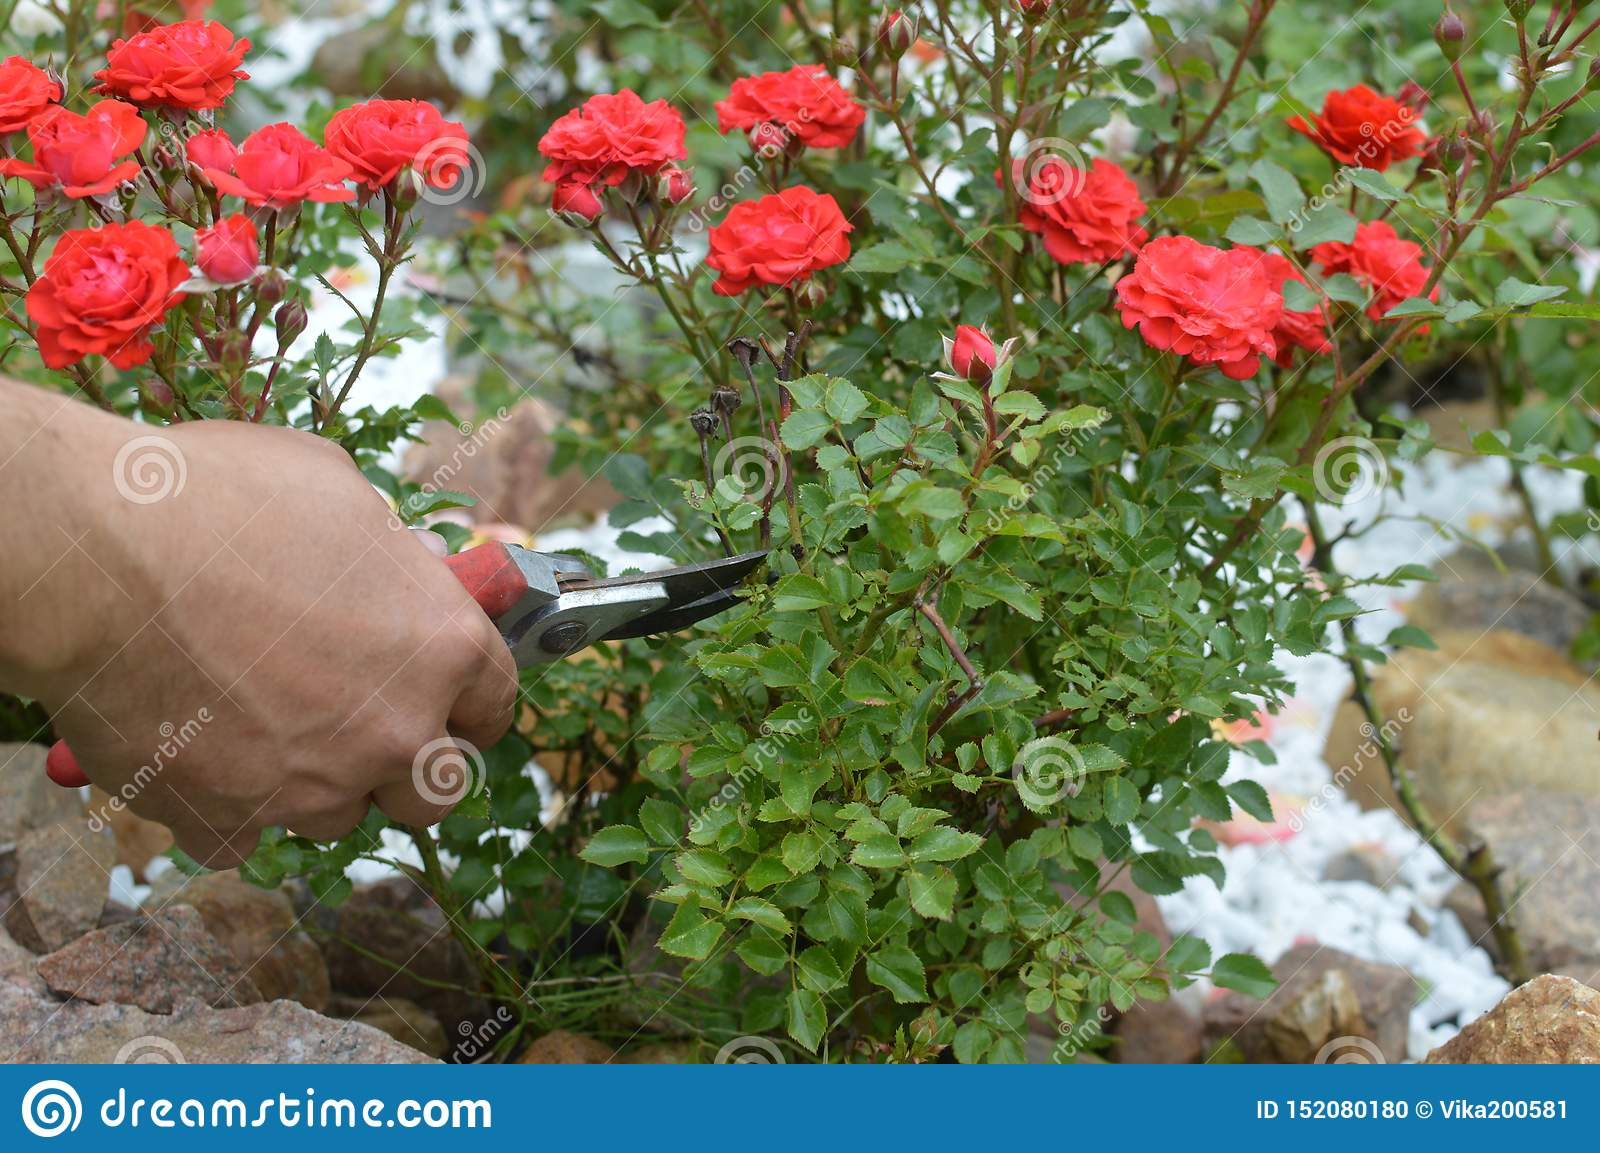 care of garden red roses